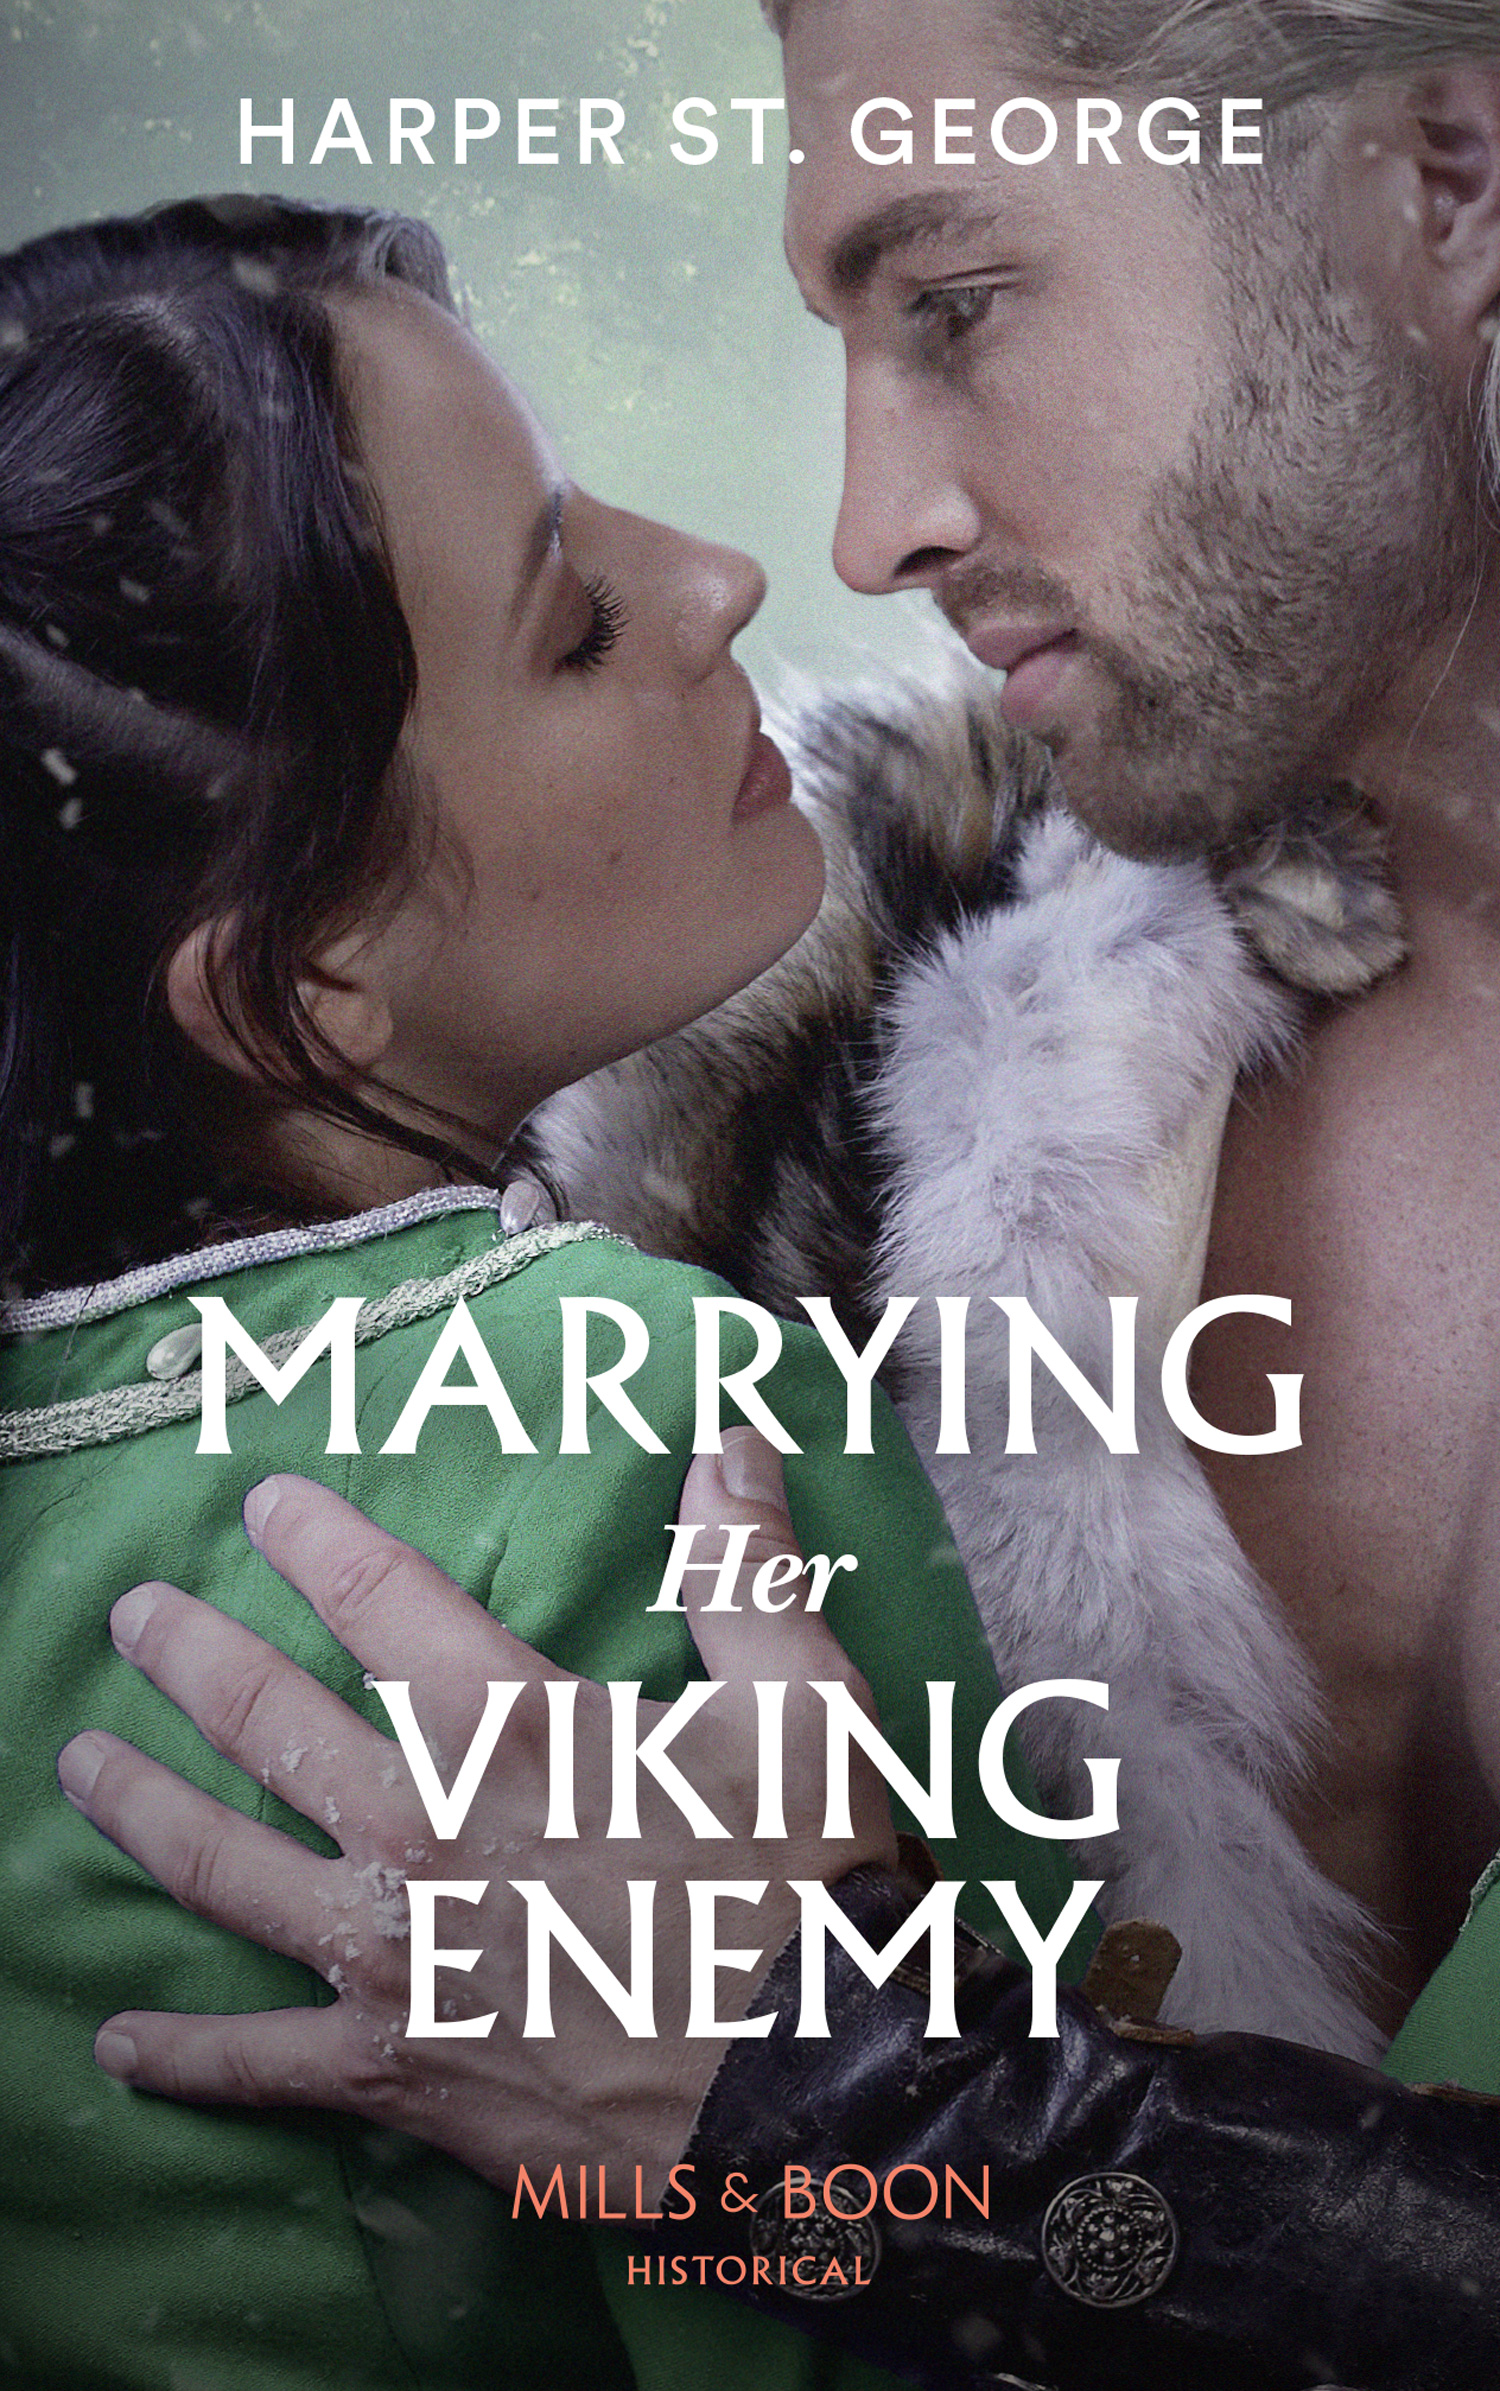 Marrying Her Viking Enemy